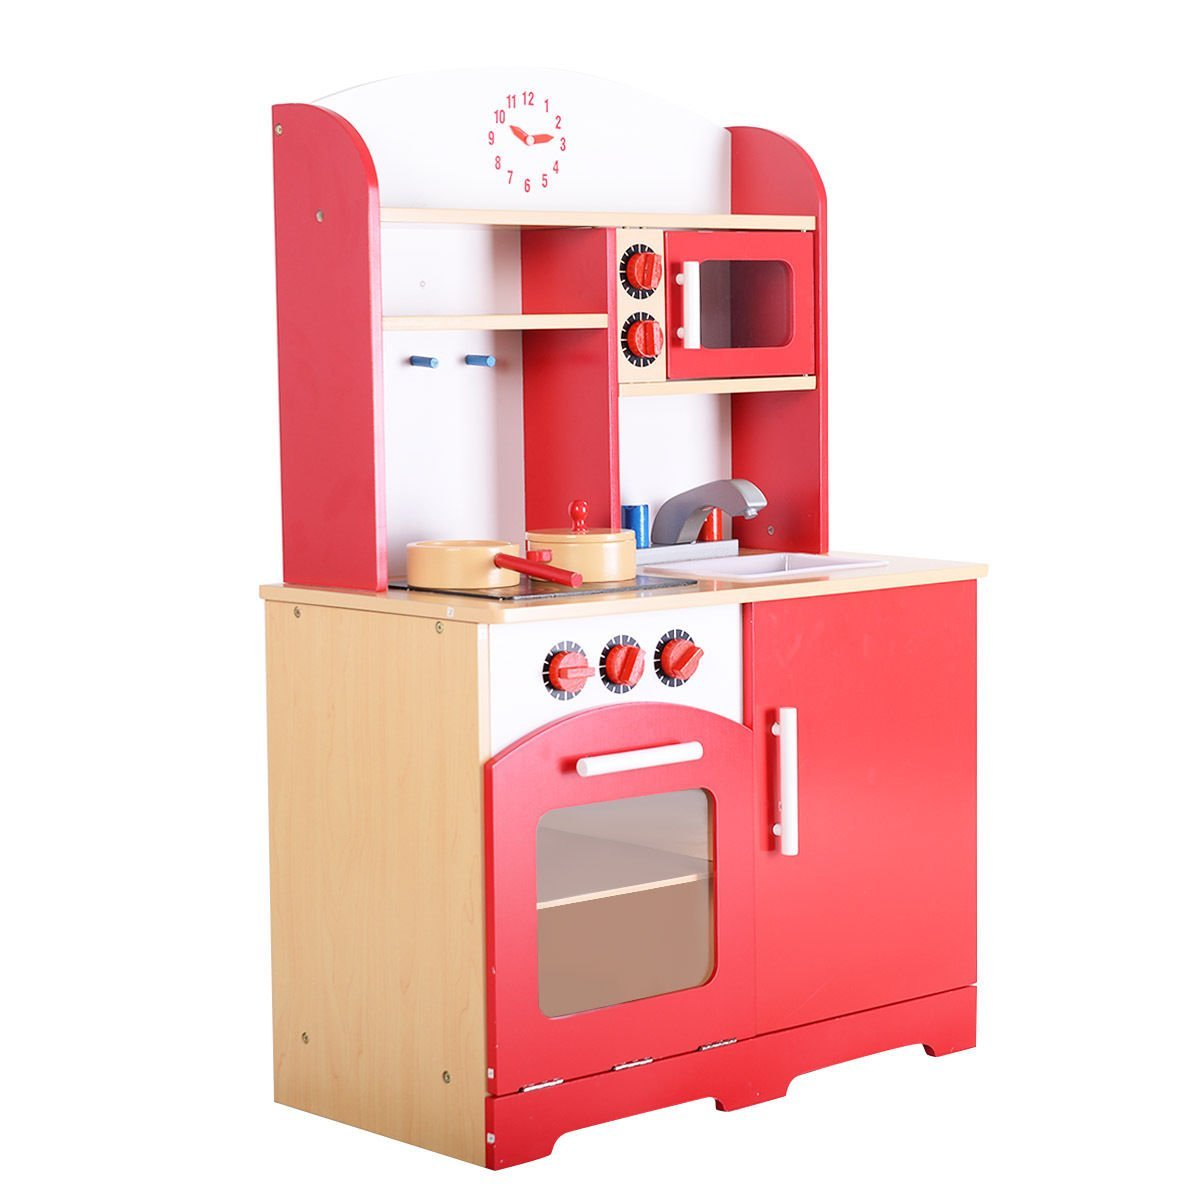 Amazon com new goplus wood kitchen toy kids cooking pretend play set toddler wooden playset new toys games